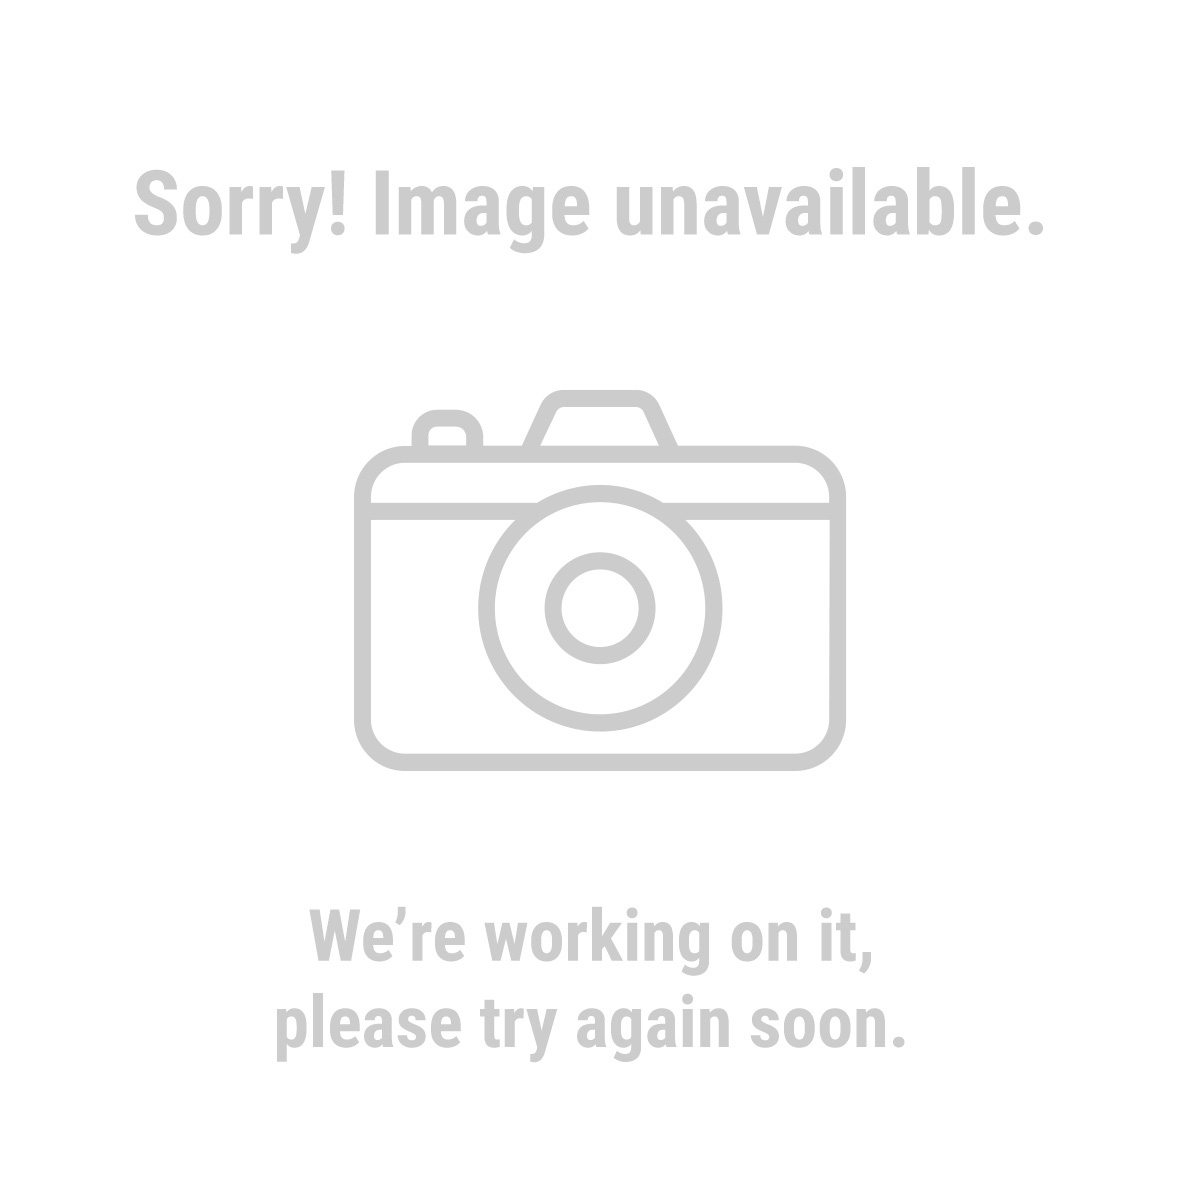 Haul-Master 61920 400 lb. Capacity 6 ft. x 1 in. Heavy Duty Cam Buckle Tie Downs 4 Pc